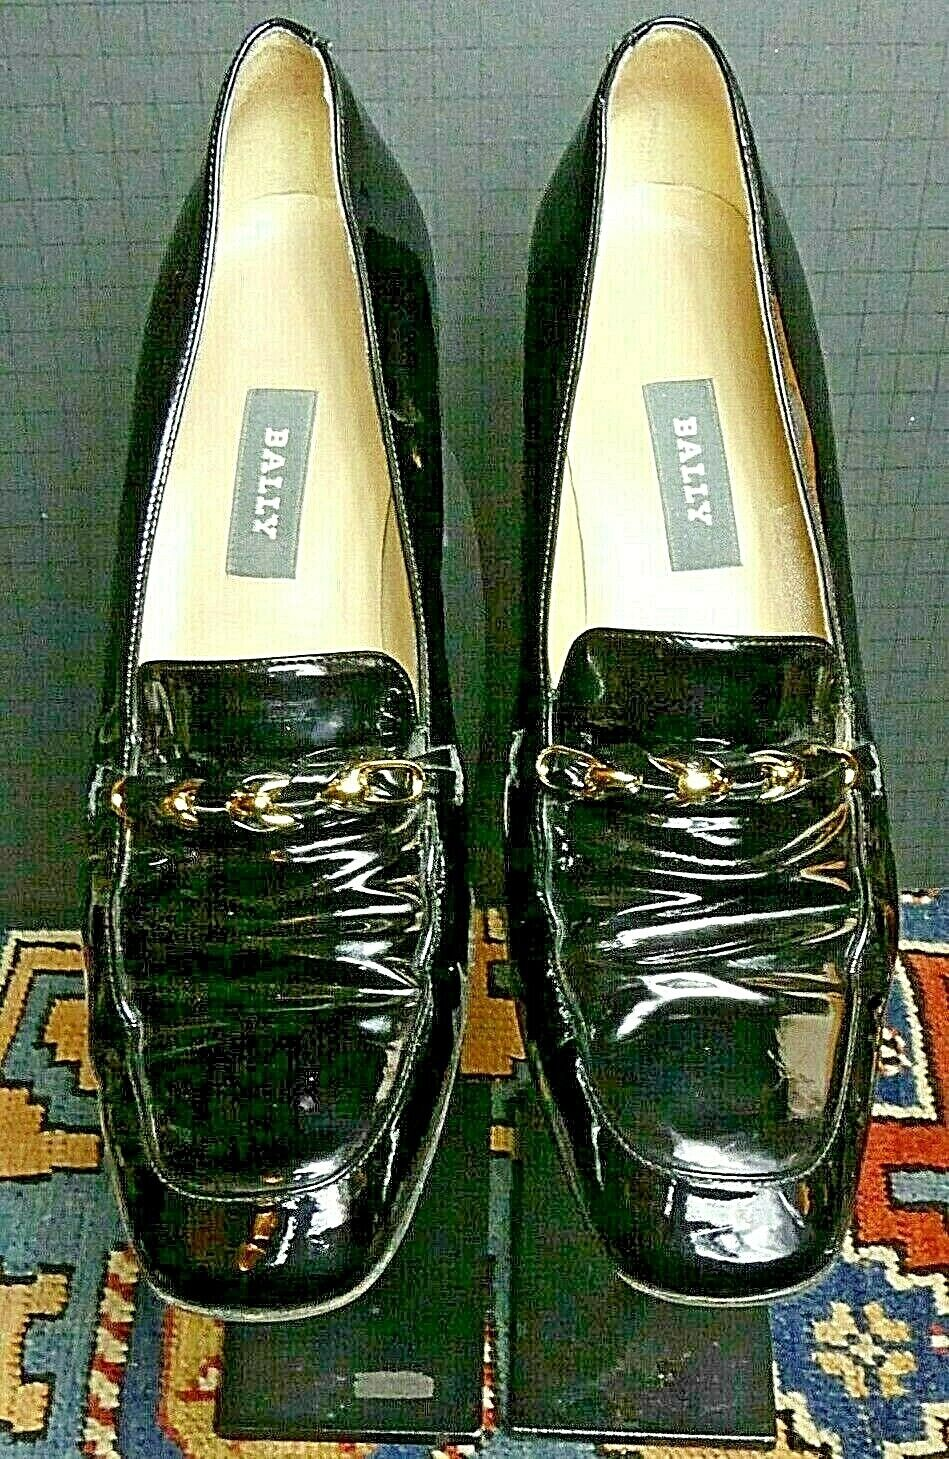 memorizzare BALLY  DENRICA  Switzerland Classic nero Patent Leather Pumps Pumps Pumps Sz. 9.5M MINT   più economico